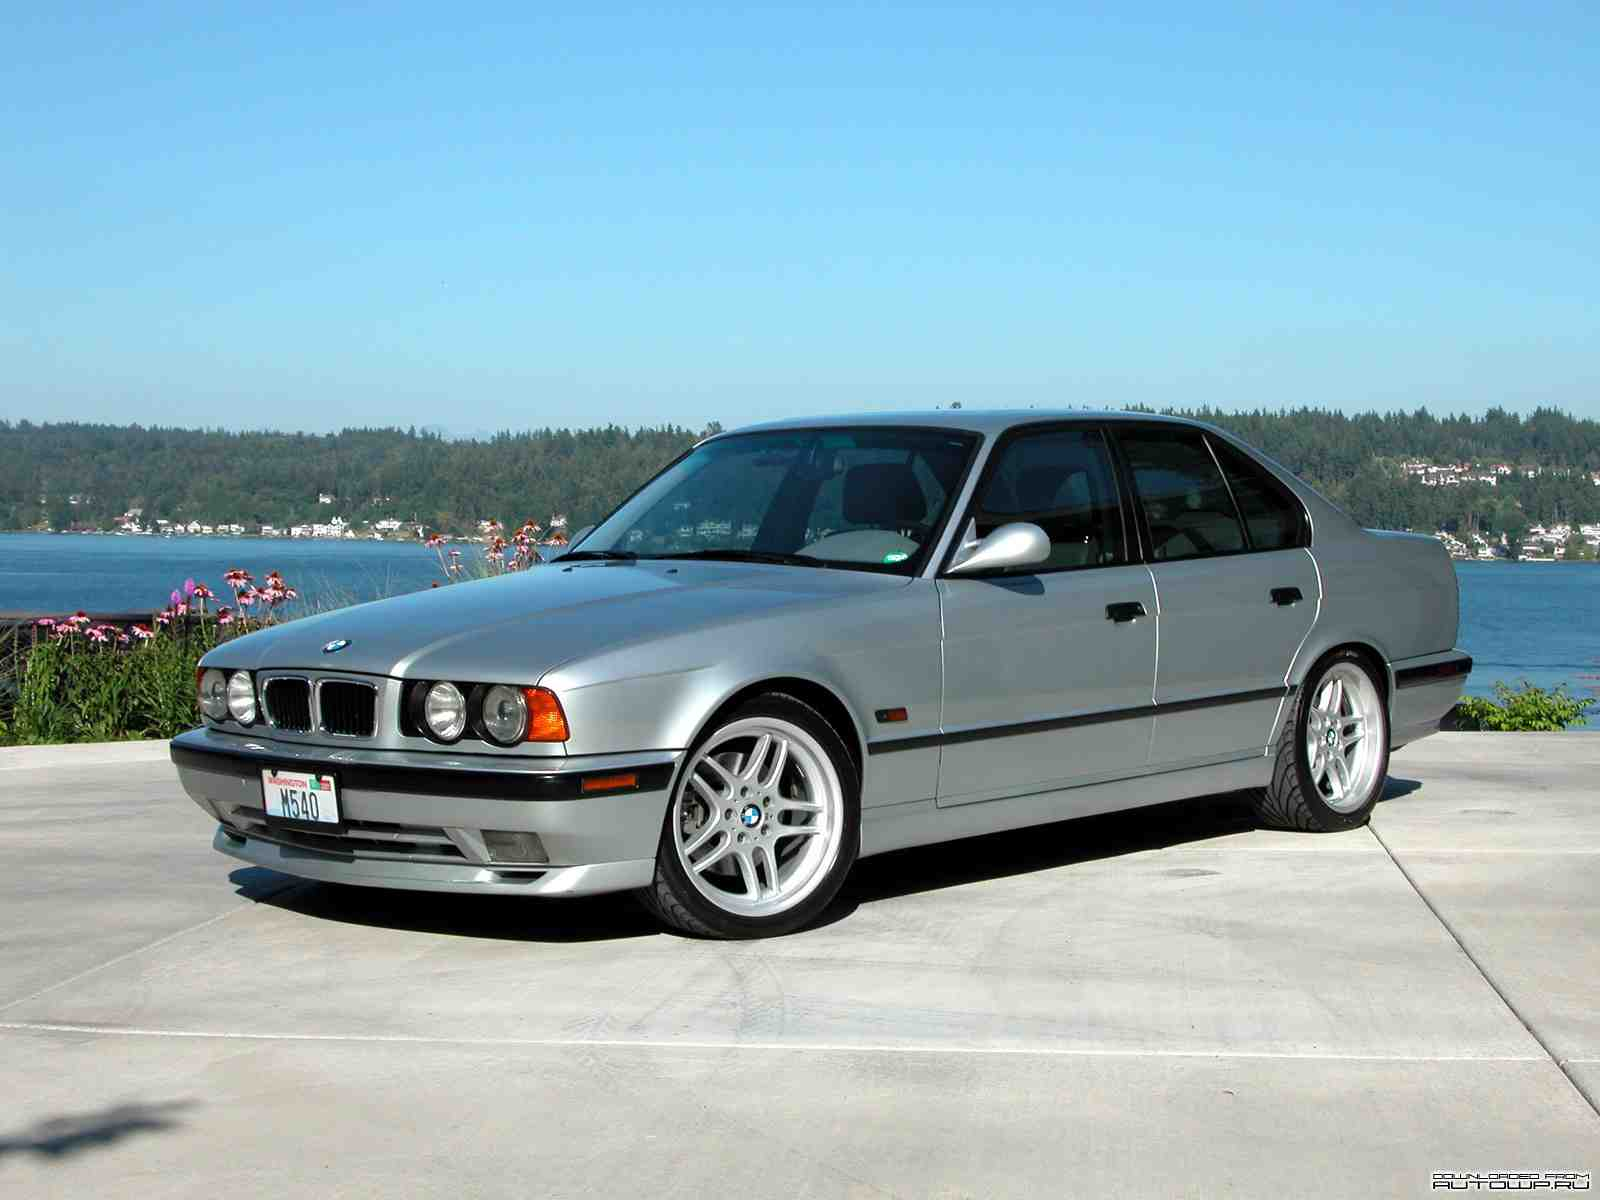 1988 1996 bmw 5 series e34 workshop repair service manual rh pagelarge com BMW 7 Series E38 1994 BMW E34 530I